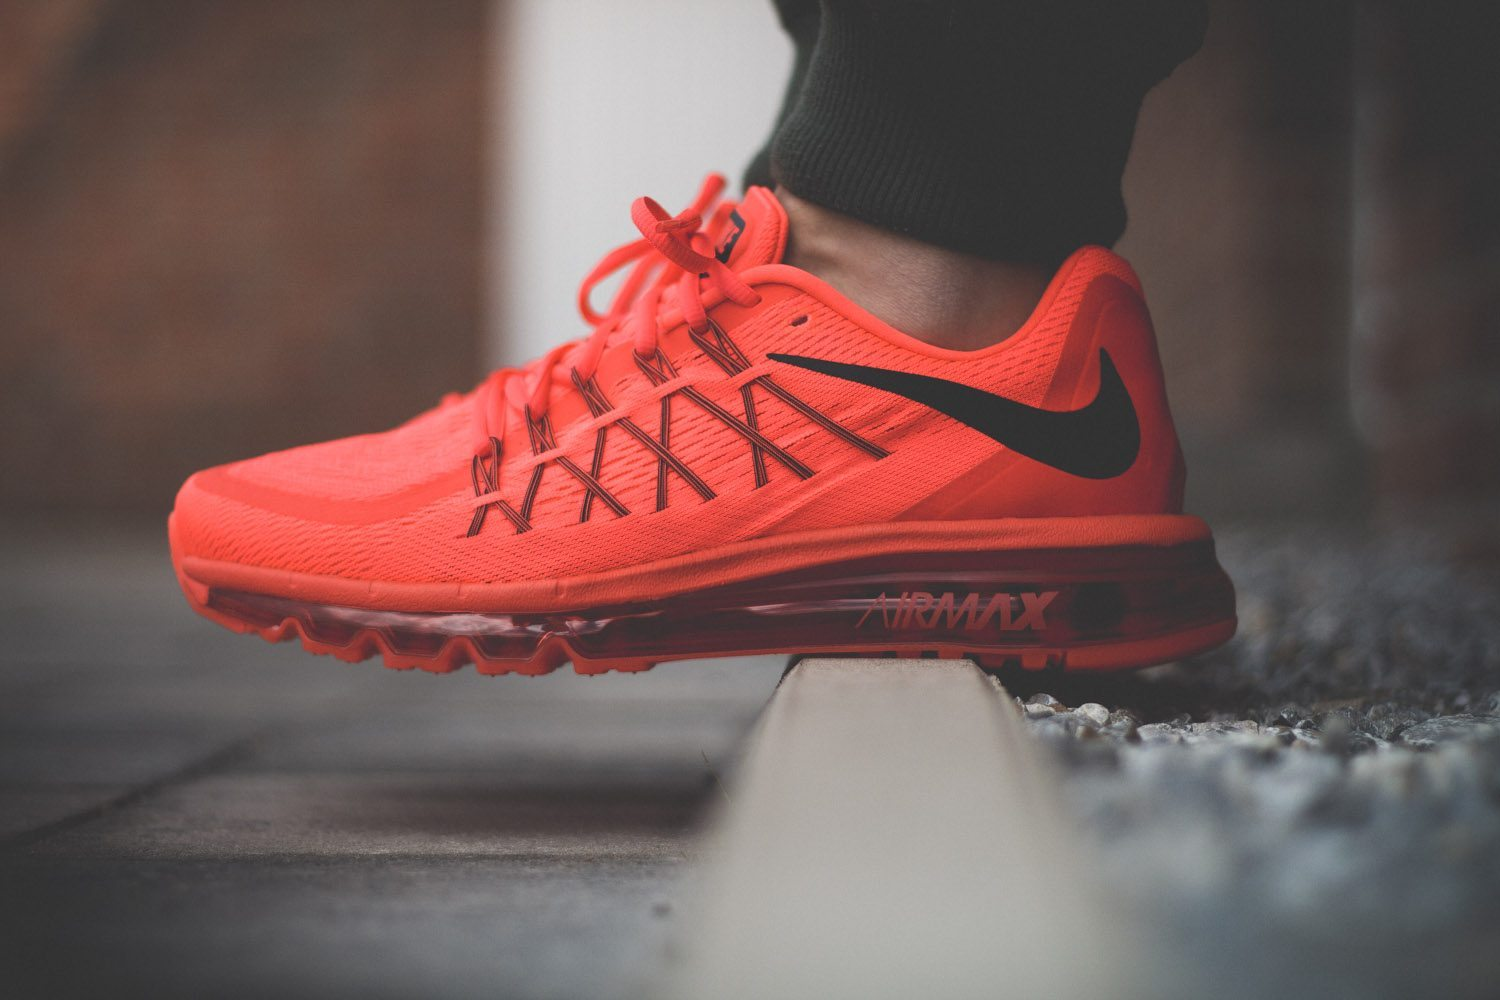 Nike Air Max 2015 Bright Crimson 11